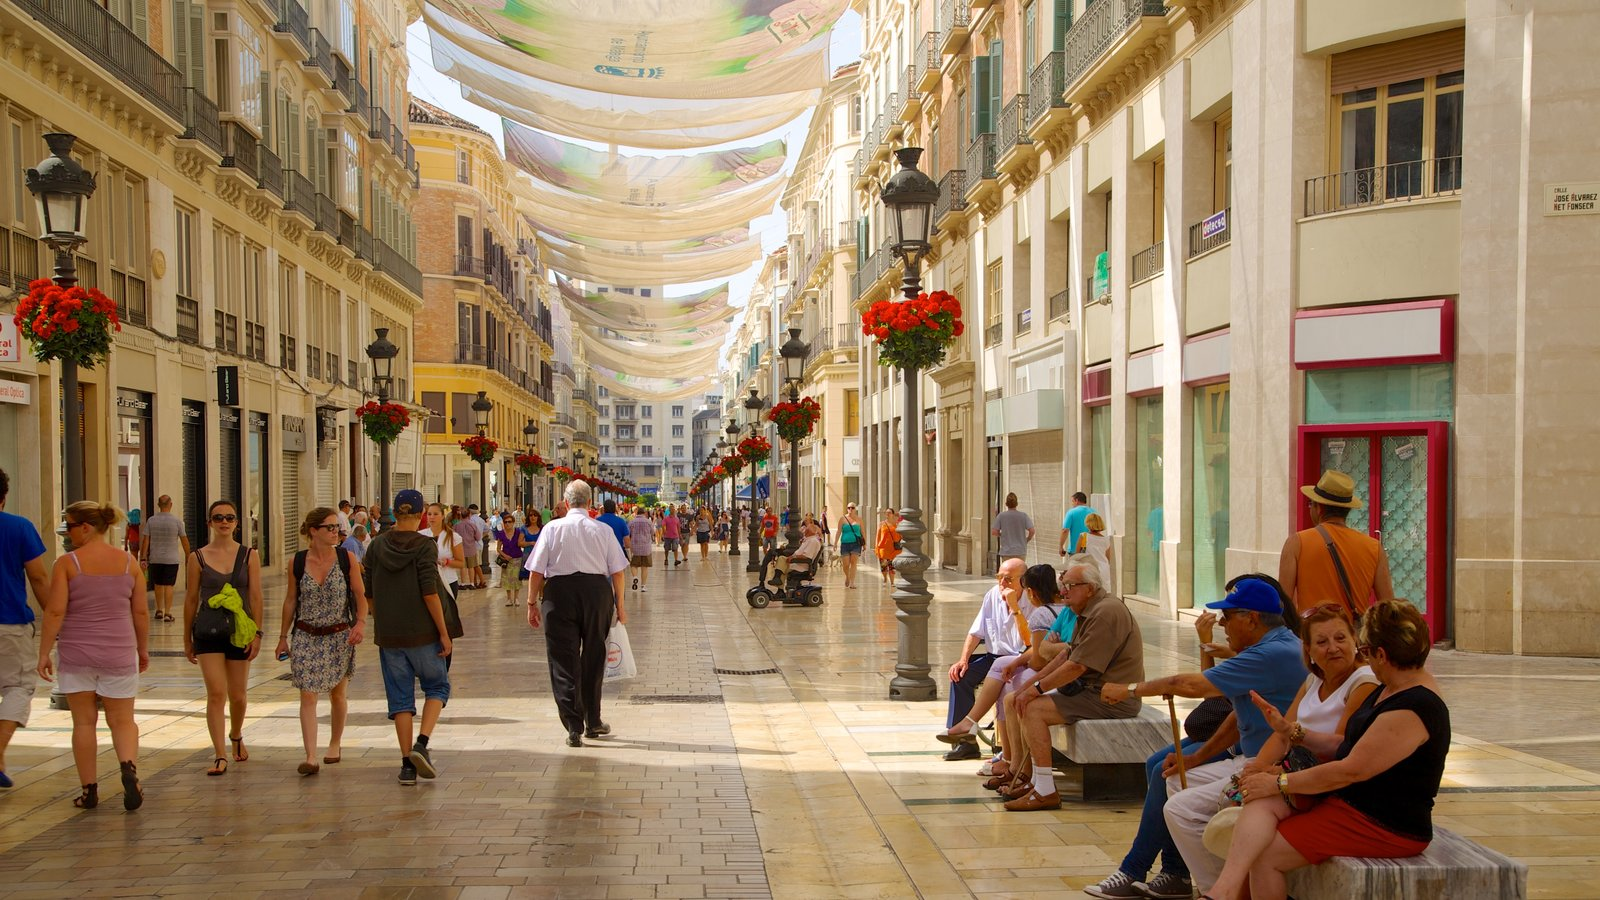 Malaga Historic Centre showing heritage architecture, a city and street scenes